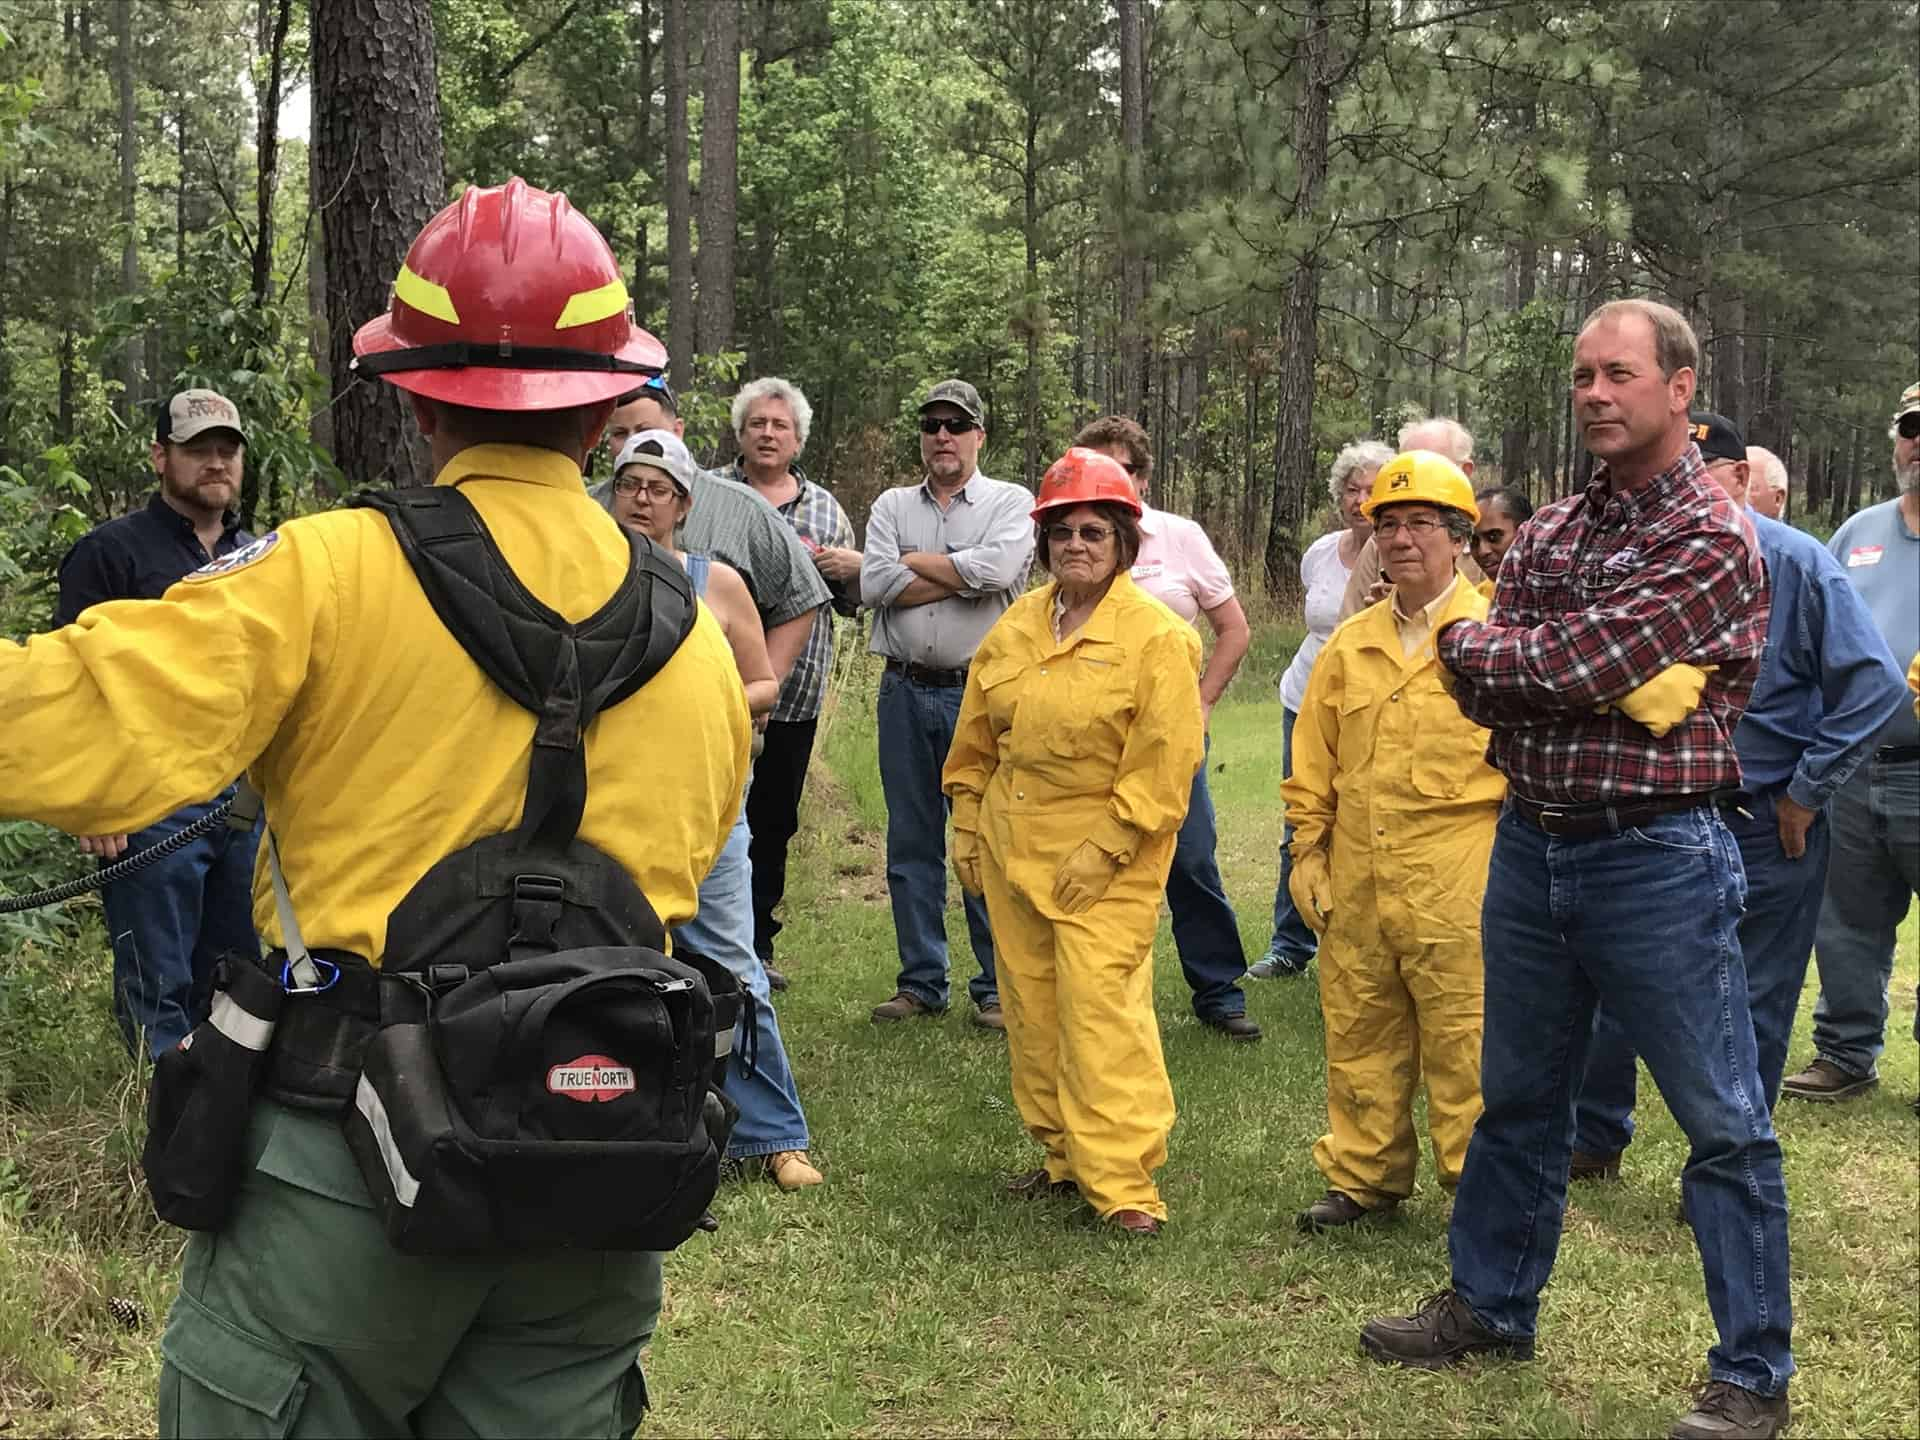 Prescribed fire practitioner explaining the process of controlled burning to the public